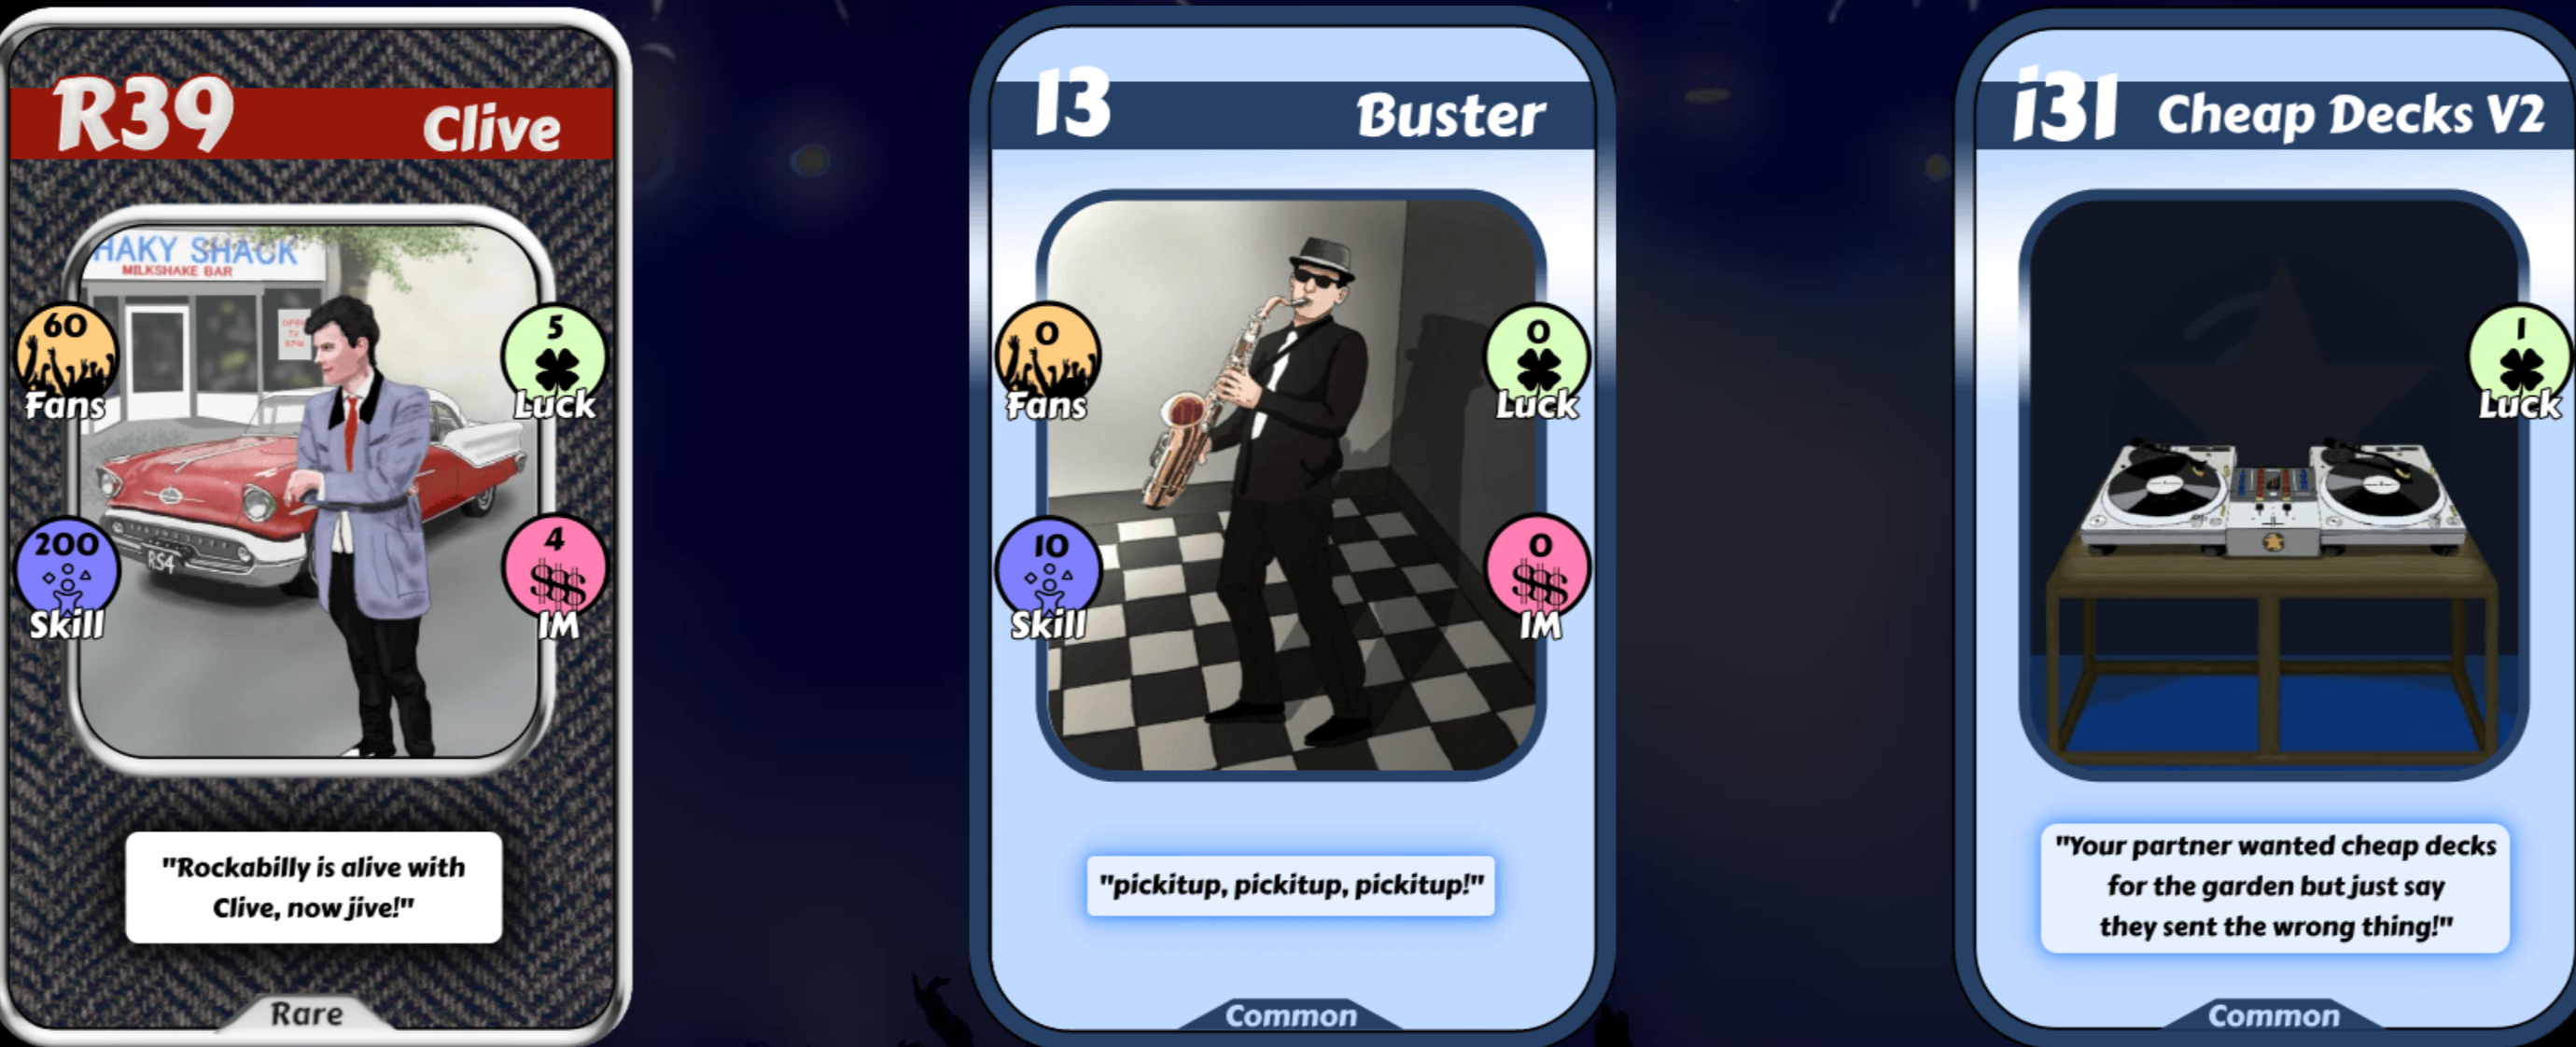 card352.png